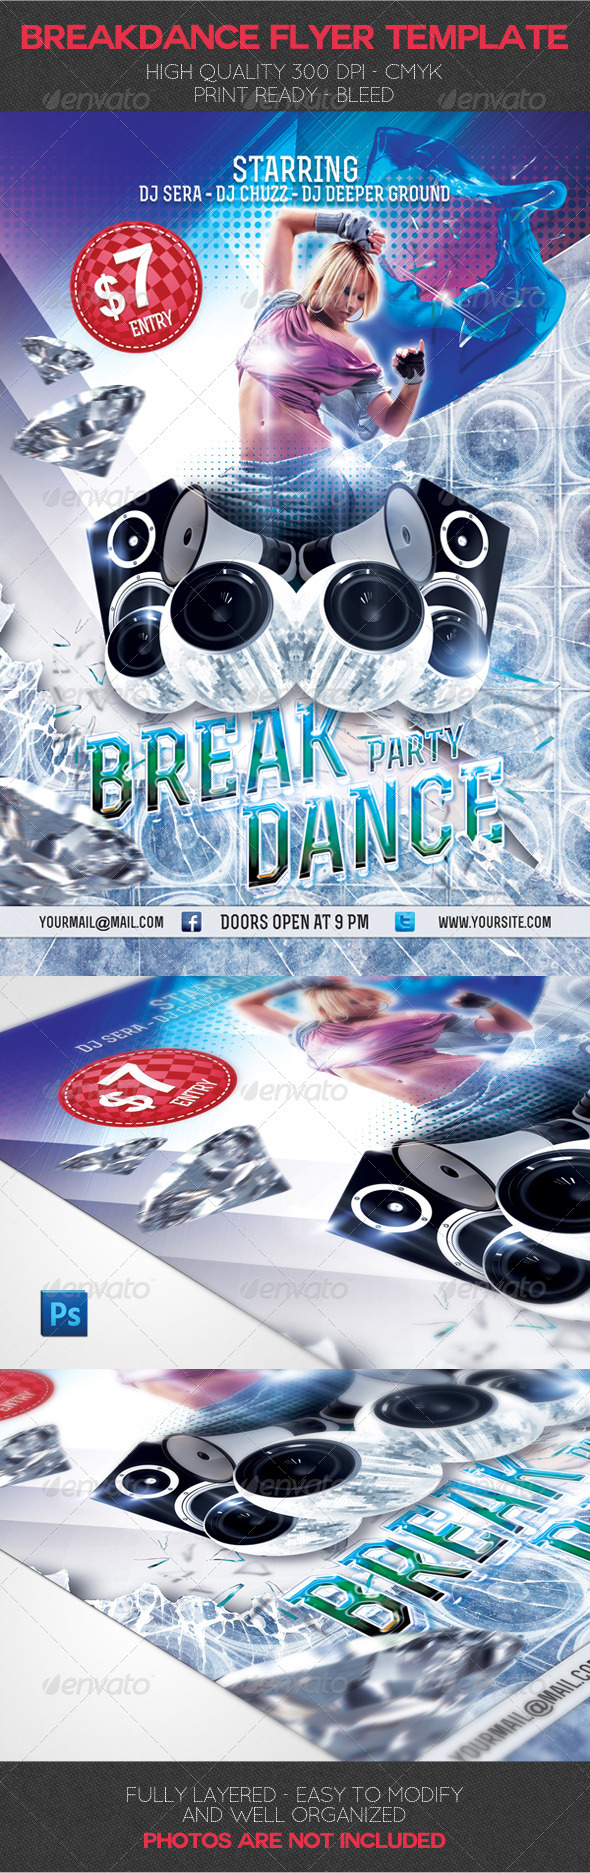 Breakdance Party Flyer Template - Events Flyers